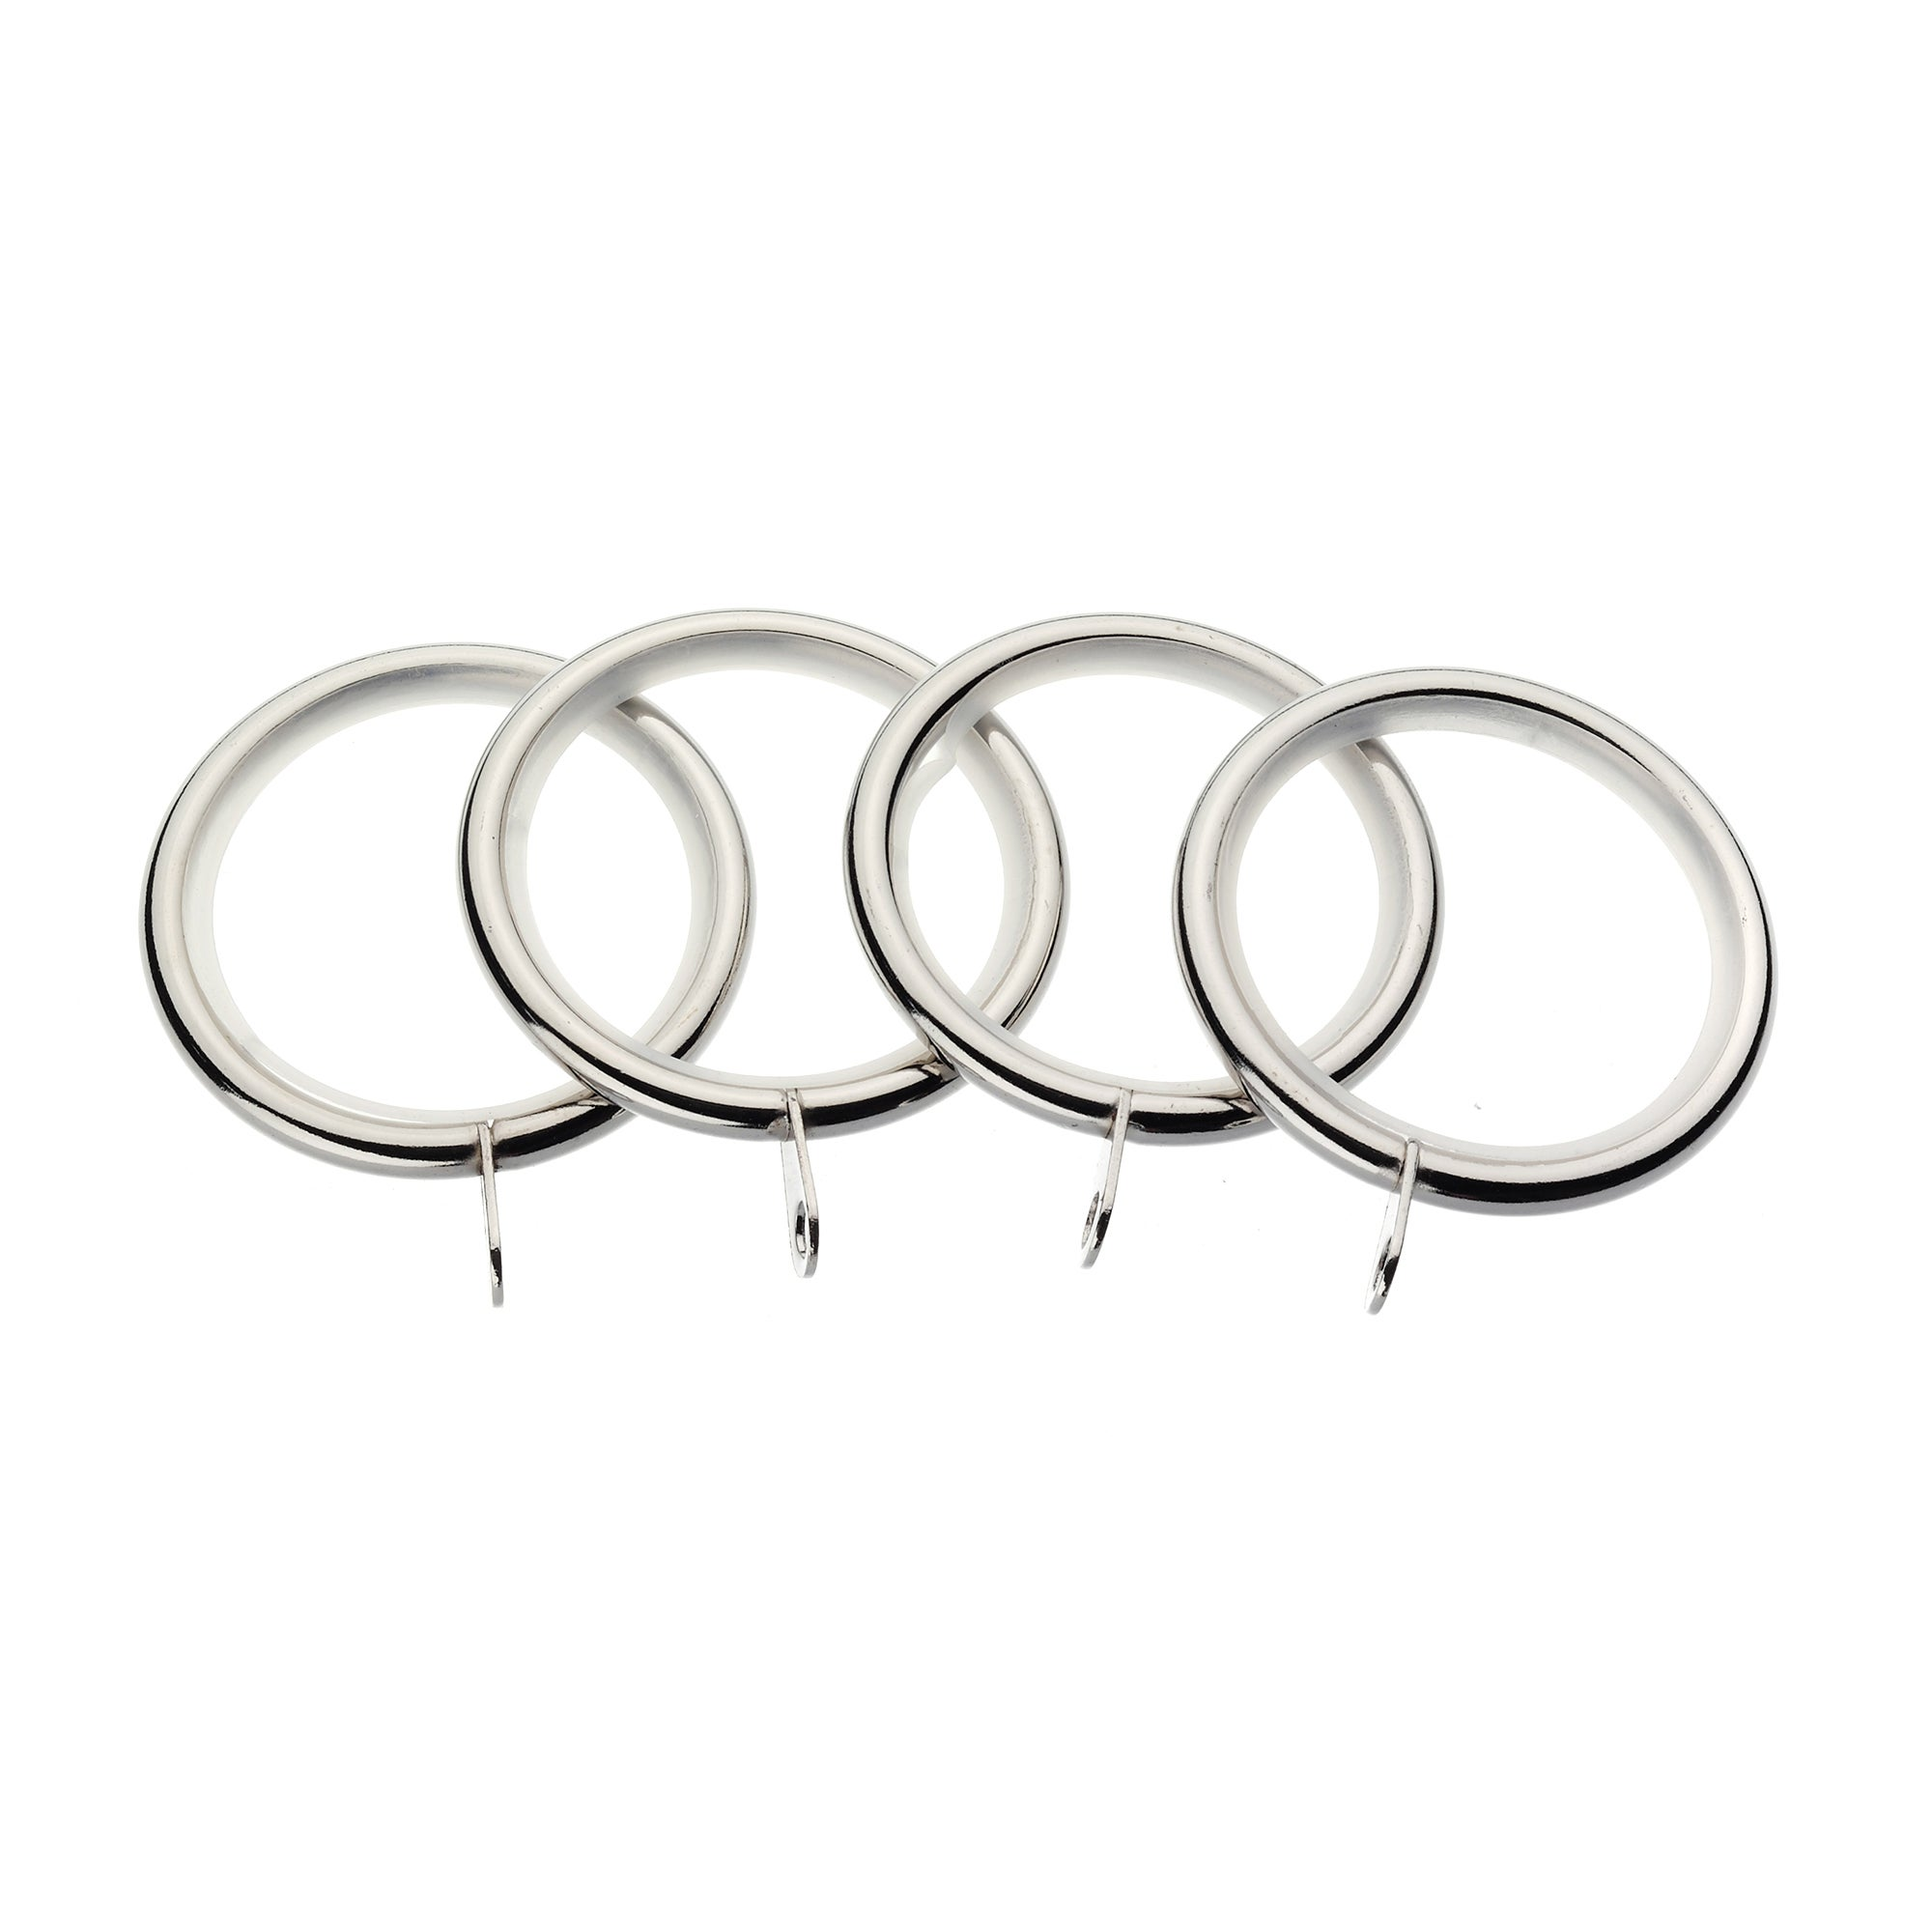 Hotel Mirage Collection Pack of 4 Curtain Rings